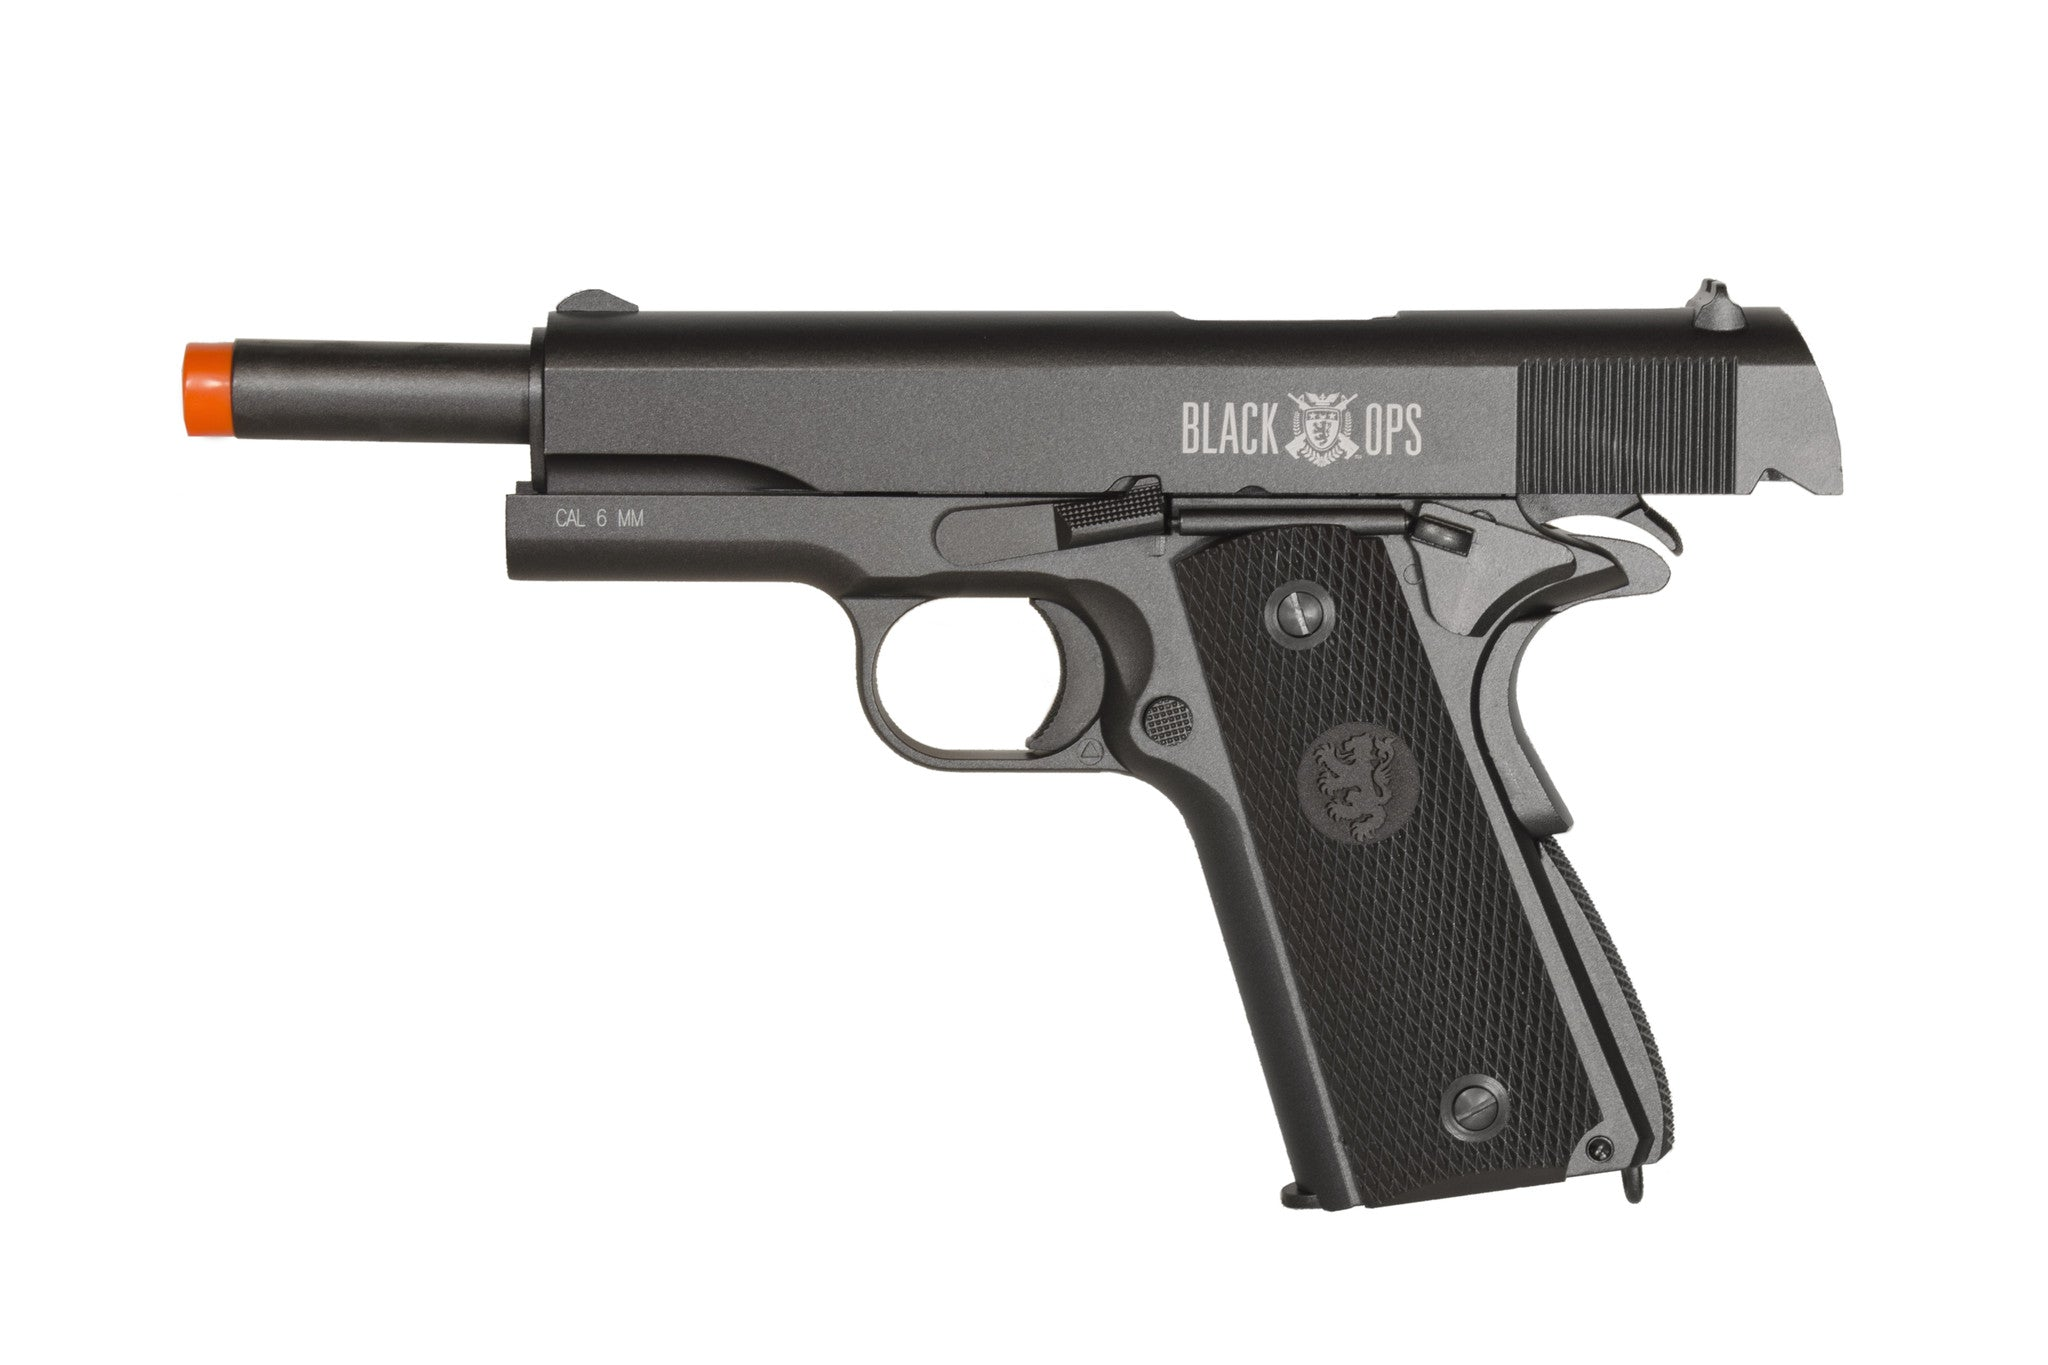 Refurbished Black Ops 1911 Gas Blowback Airsoft Pistol - Full Metal Semi  Automatic with Hop Up GBB Pistol